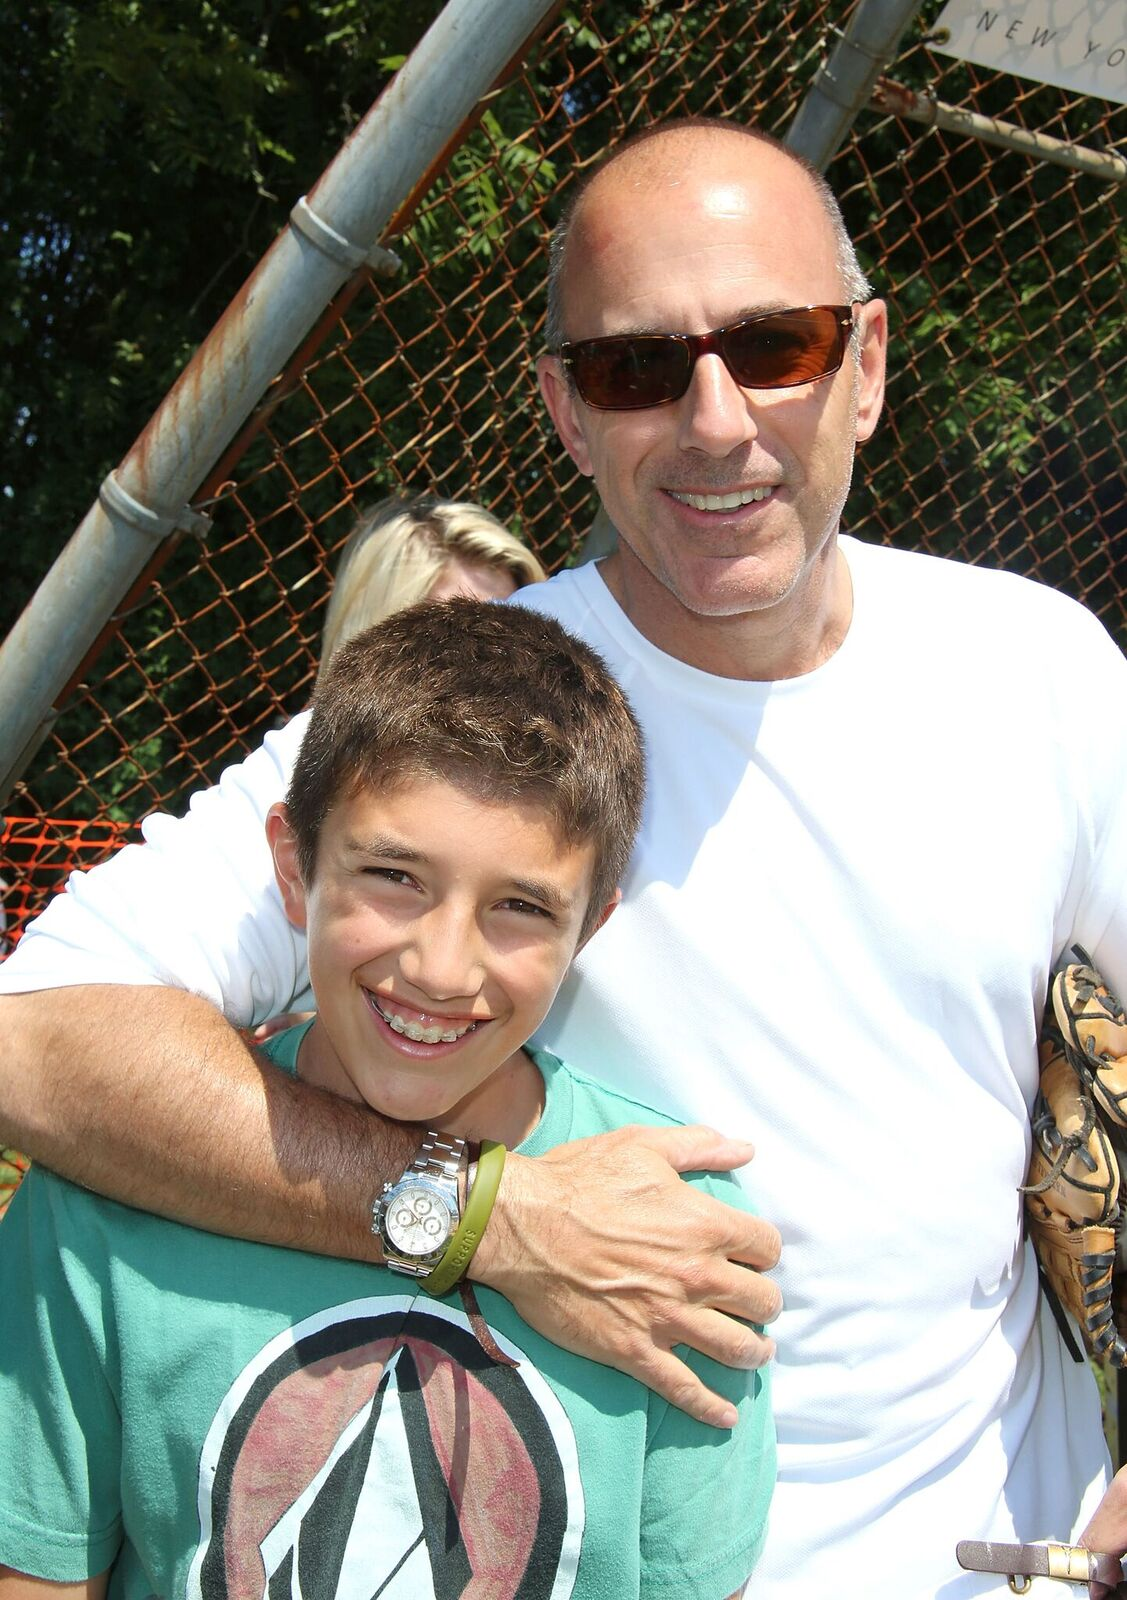 Matt Lauer and son Jack at the 65th Anniversary Artists & Writers Celebrity Softball Game on August 17, 2013, in East Hampton, New York   Photo: Sonia Moskowitz/Getty Images